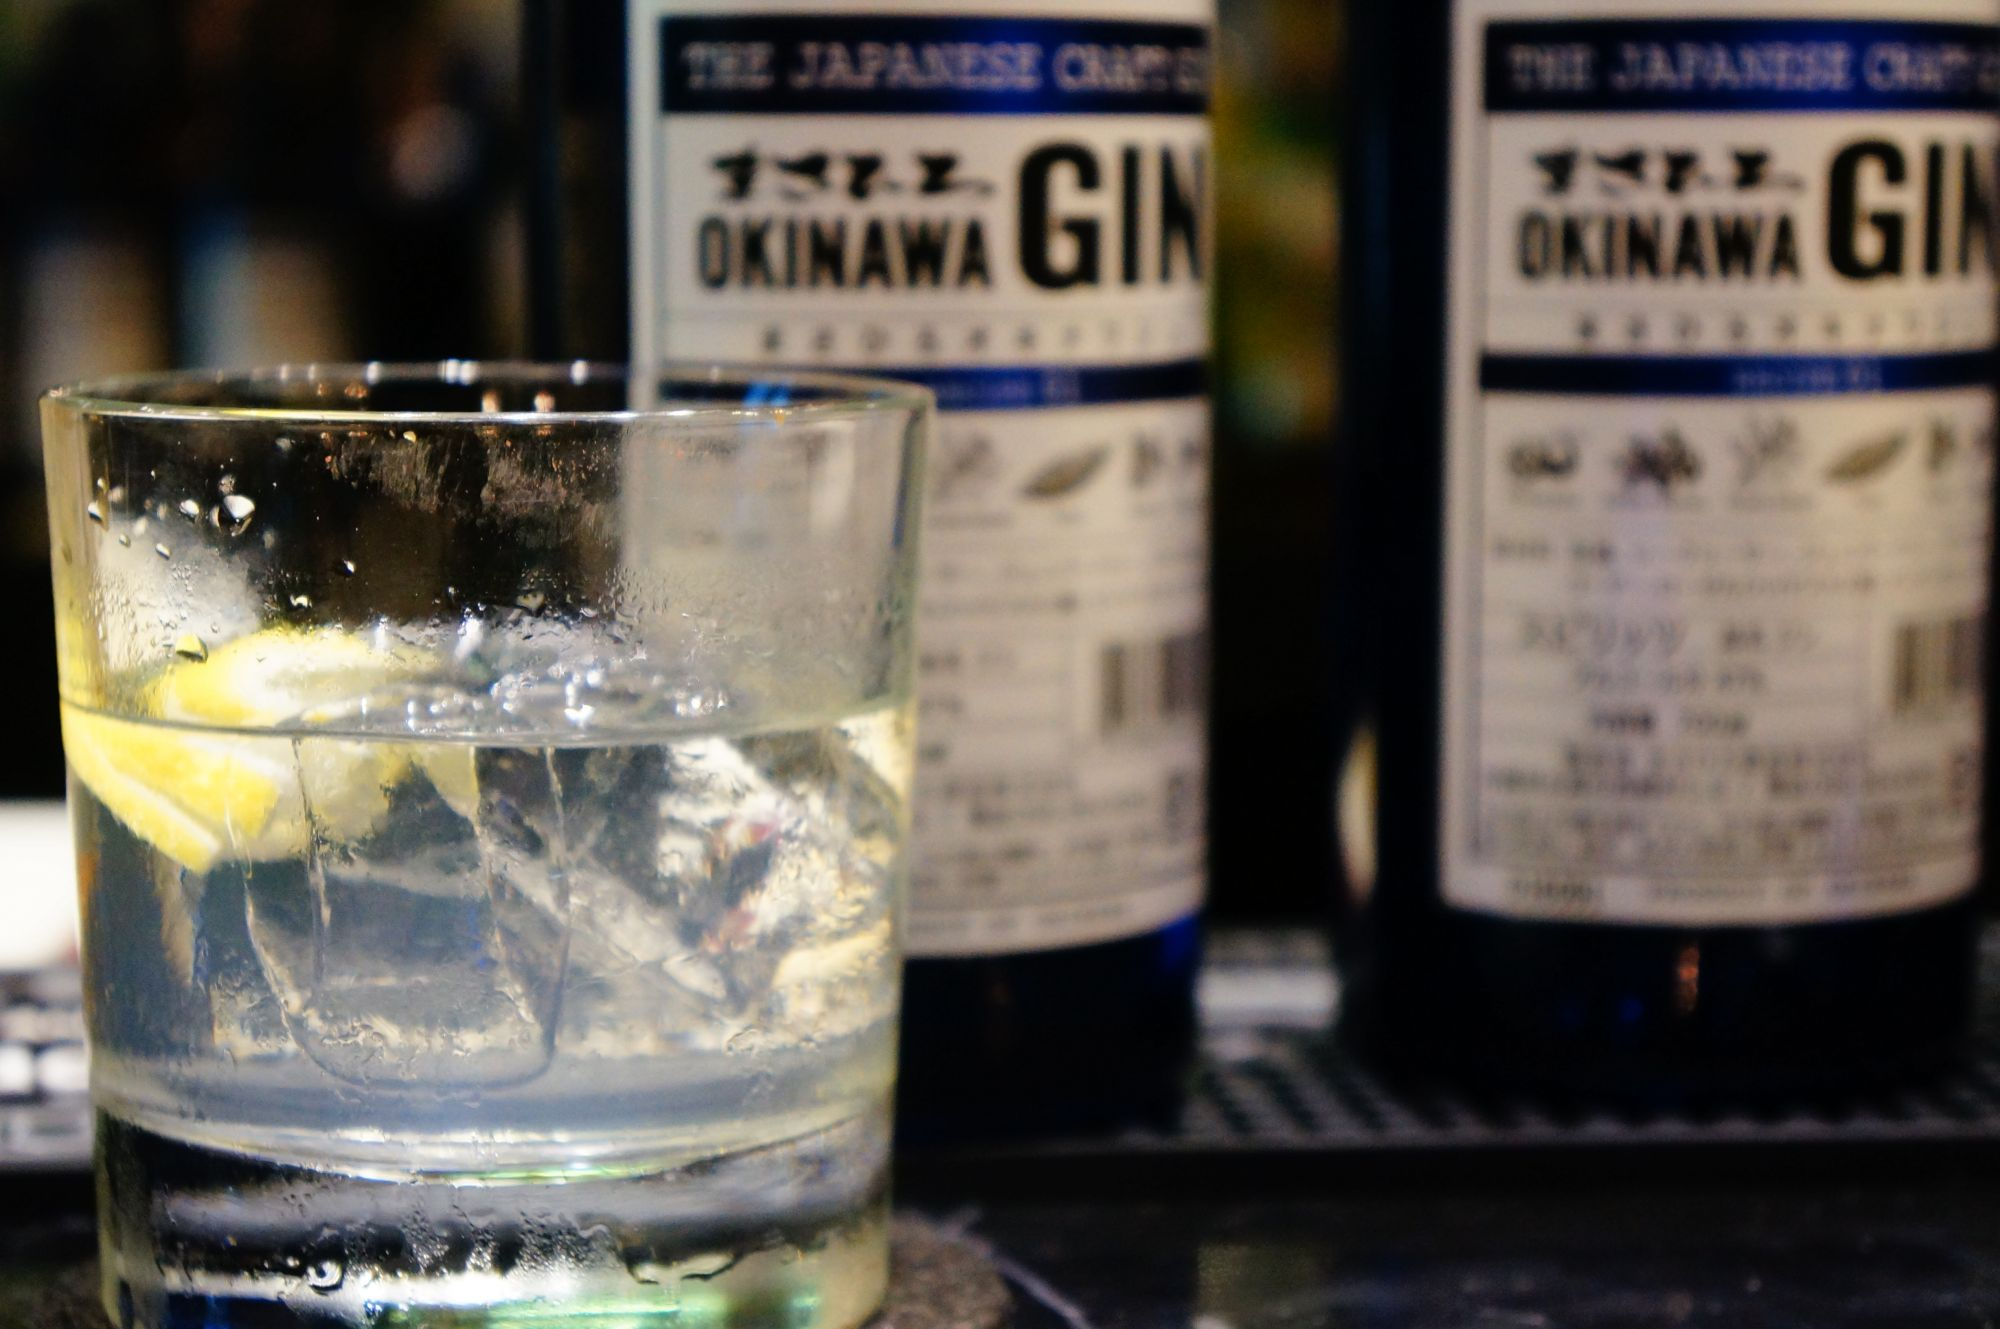 Masahiro Okinawa Gin Debuts In The Philippines With A Tropical Twist